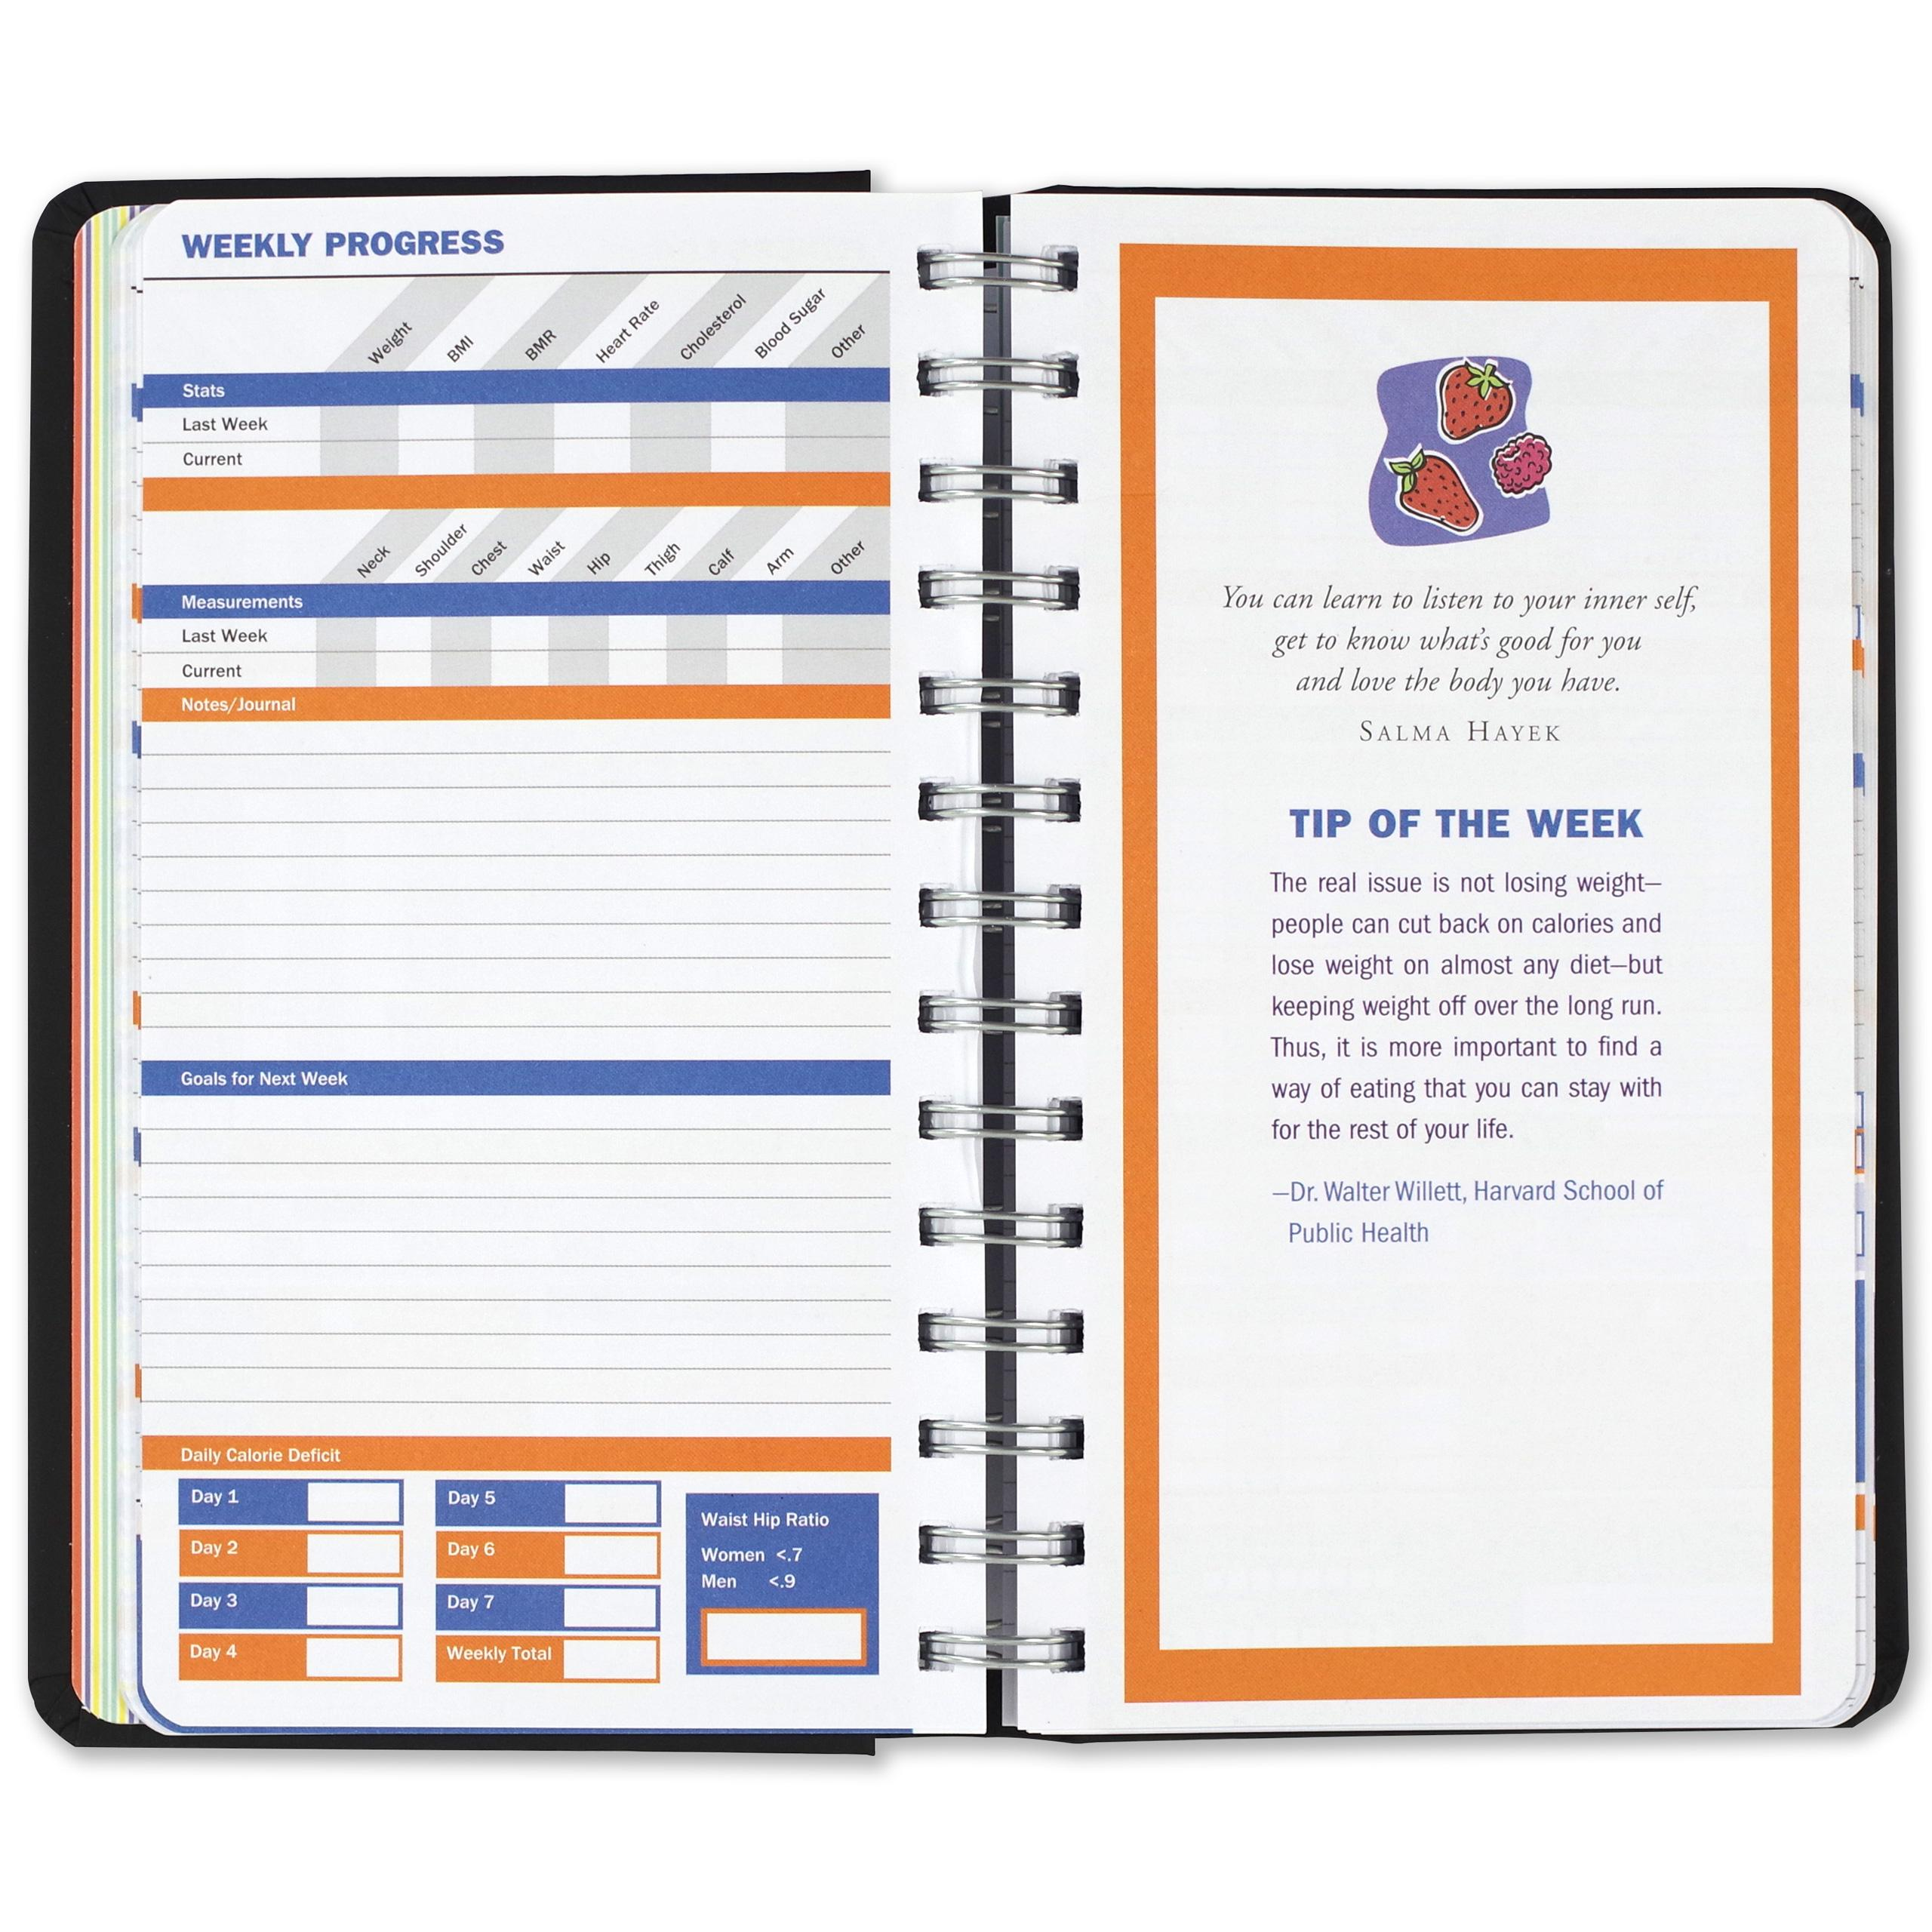 diet  u0026 fitness journal  your personal guide to optimum health  diary  exercise   little black